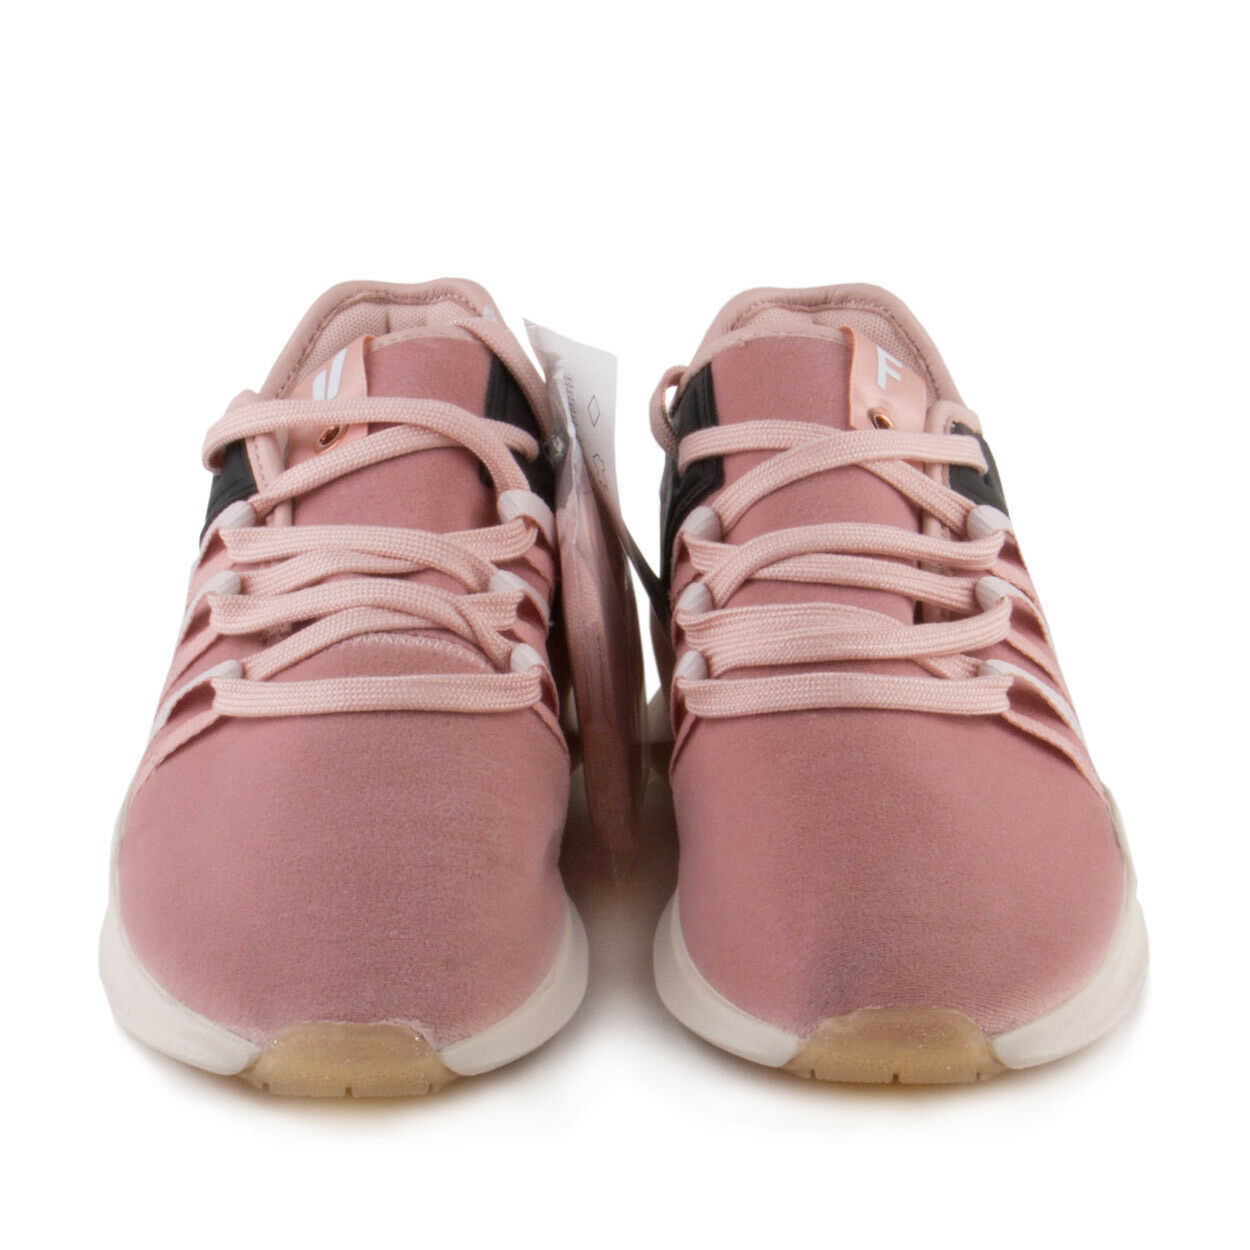 Adidas Womens EQT Lacing Adv W S.E. Overkill X Fruition Fruition Fruition Pink White CM7998 f647e9